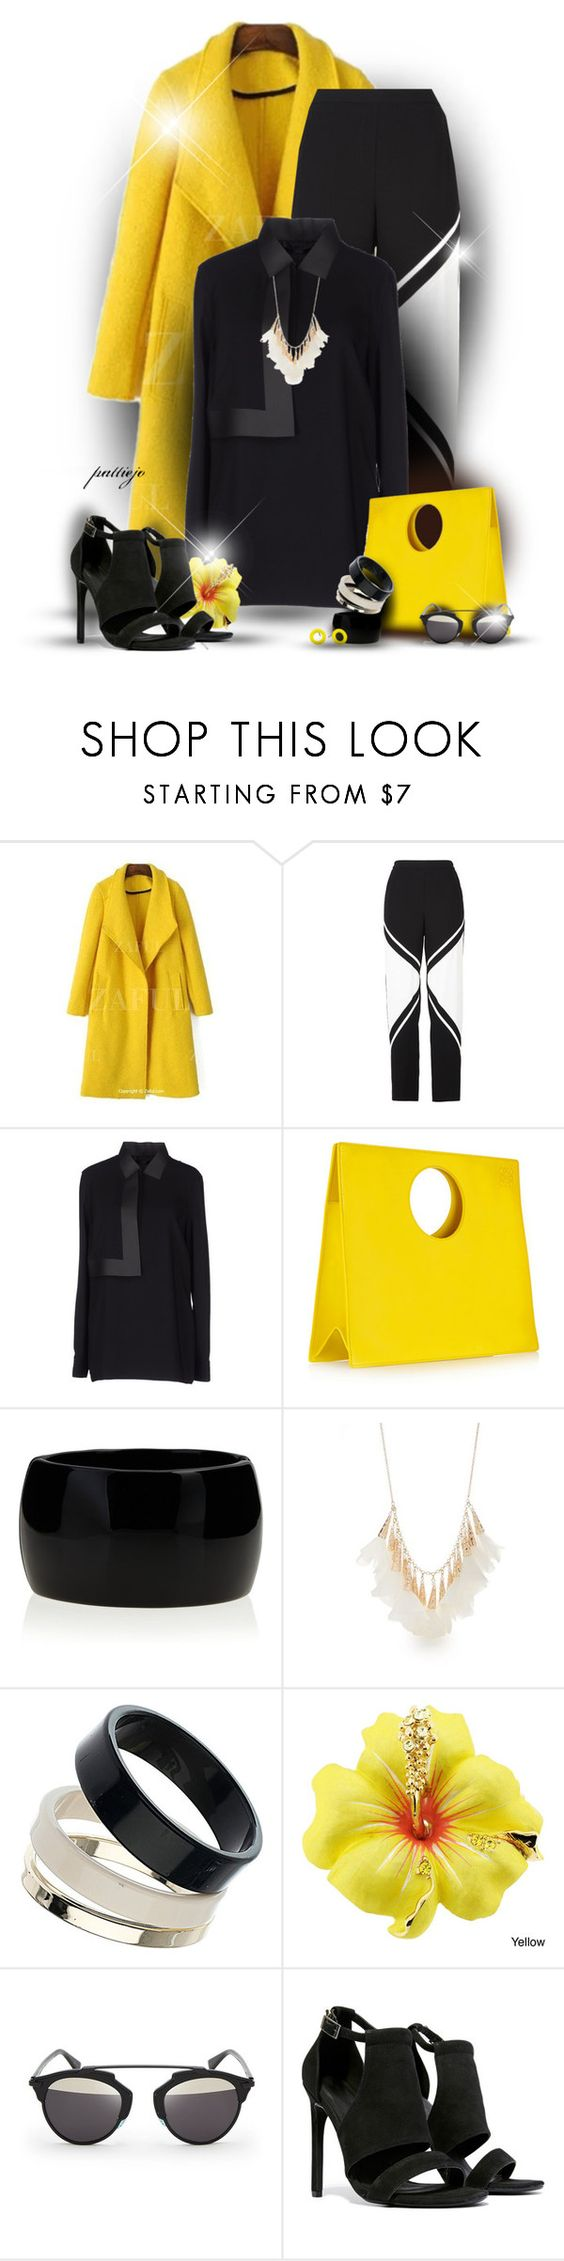 """""""Her Daffodil Brooch"""" by rockreborn ❤ liked on Polyvore featuring BCBGMAXAZRIA, Alexander Wang, Loewe, Kenneth Jay Lane, New Directions, Dorothy Perkins, Christian Dior, Keepsake the Label, Marc by Marc Jacobs and polyvoreeditorial"""